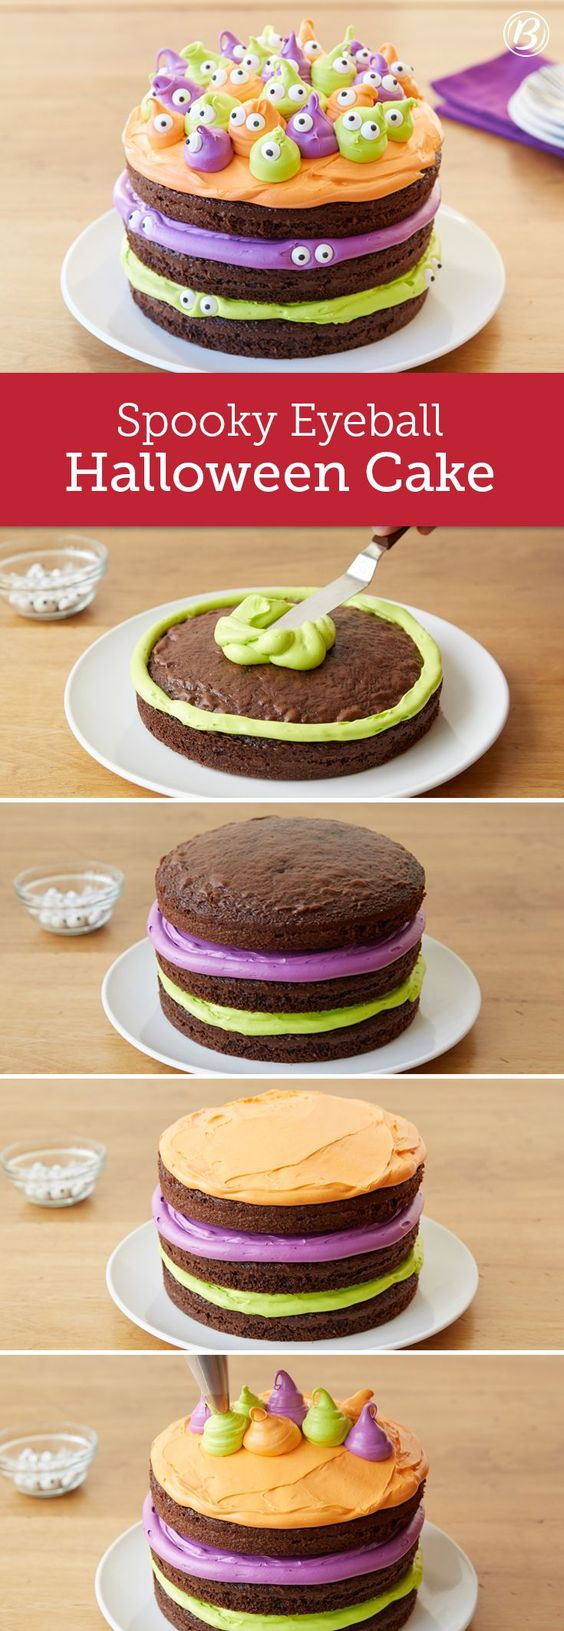 Easy Cake Decorating Love Food : Halloween cakes, Halloween and Somebody s watching me on ...